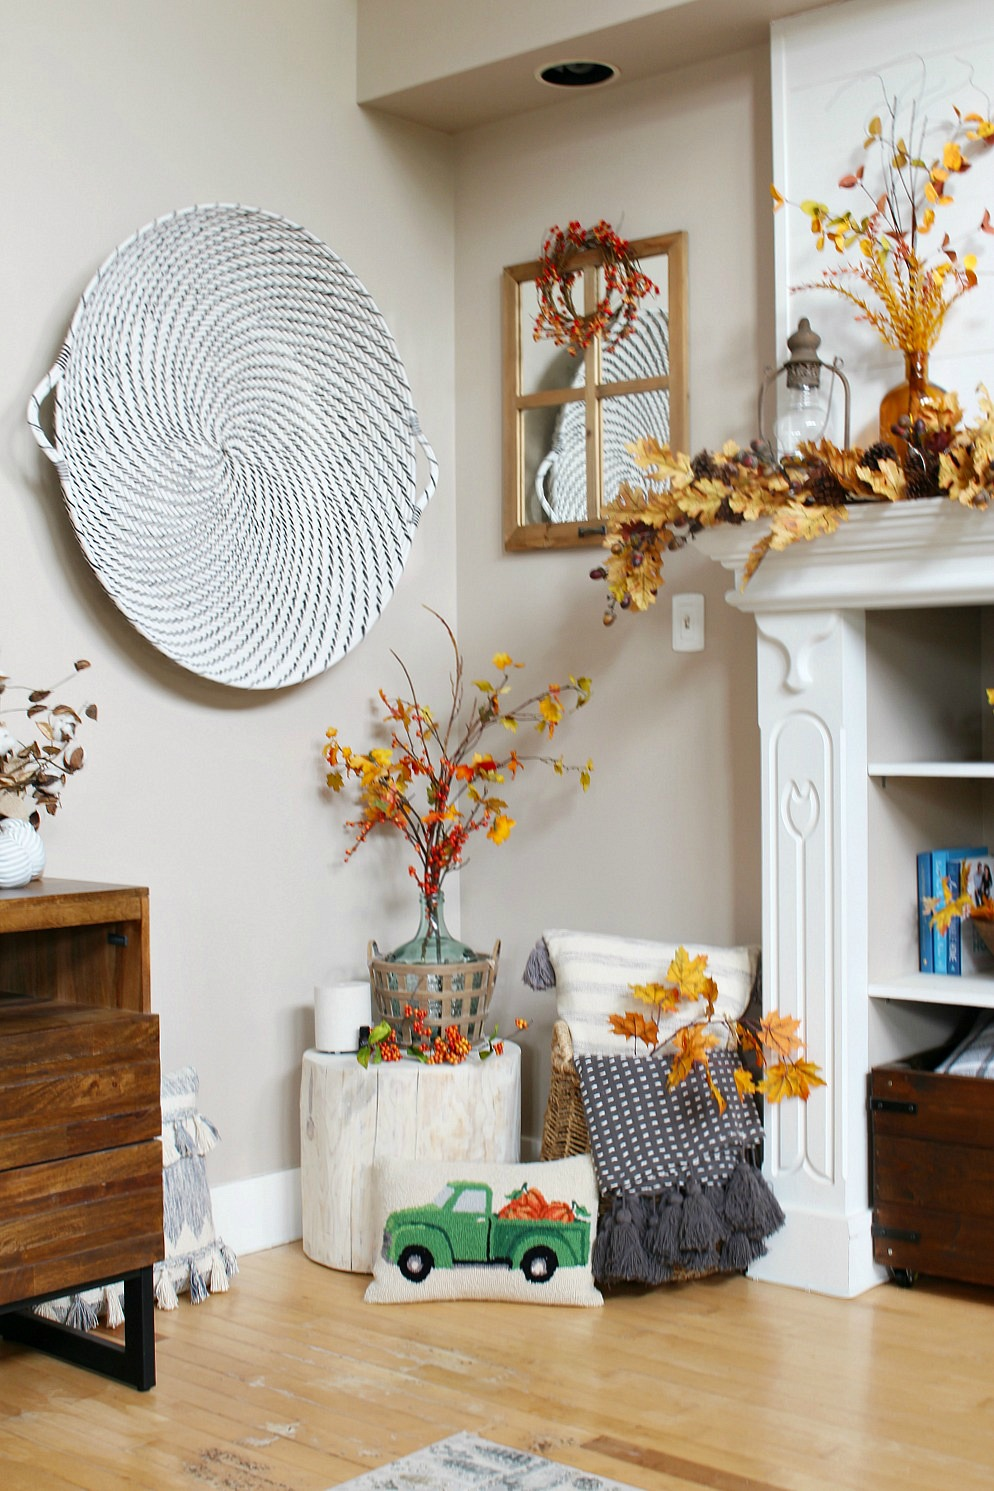 Fall family room decorated for fall with fall blankets, pillows, and faux fall branches.